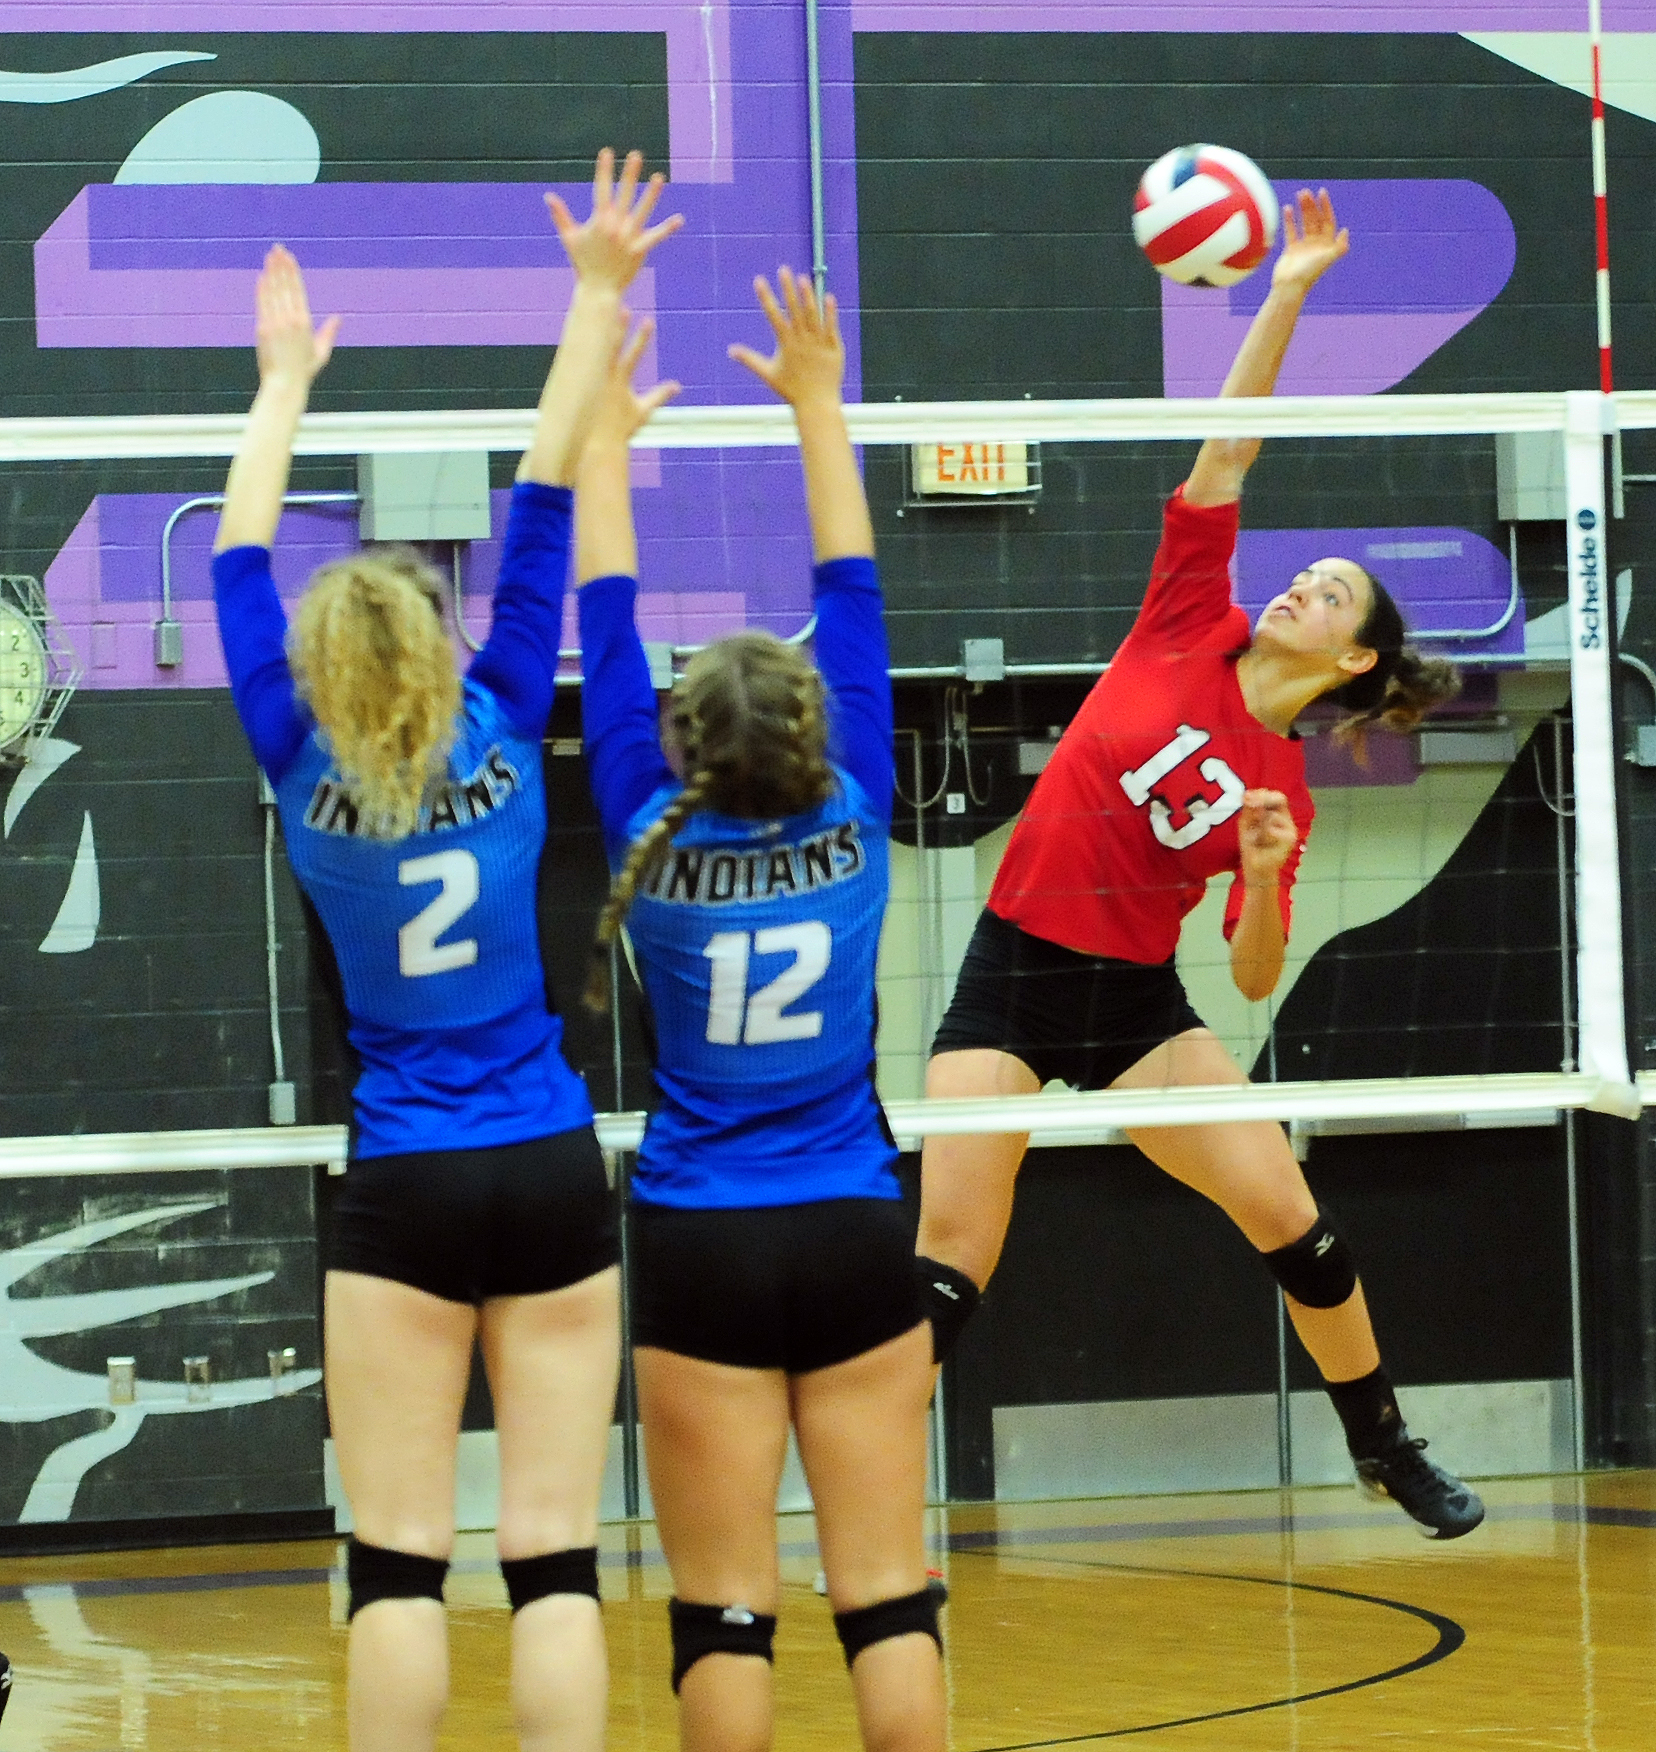 NICK INGRAM/Citizen photo Park Hill senior Chelsea Edwards hits a spike against St. Joseph Central in a Class 4 District 16 matchup Monday, Oct. 17 at Park Hill South High School in Riverside, Mo.